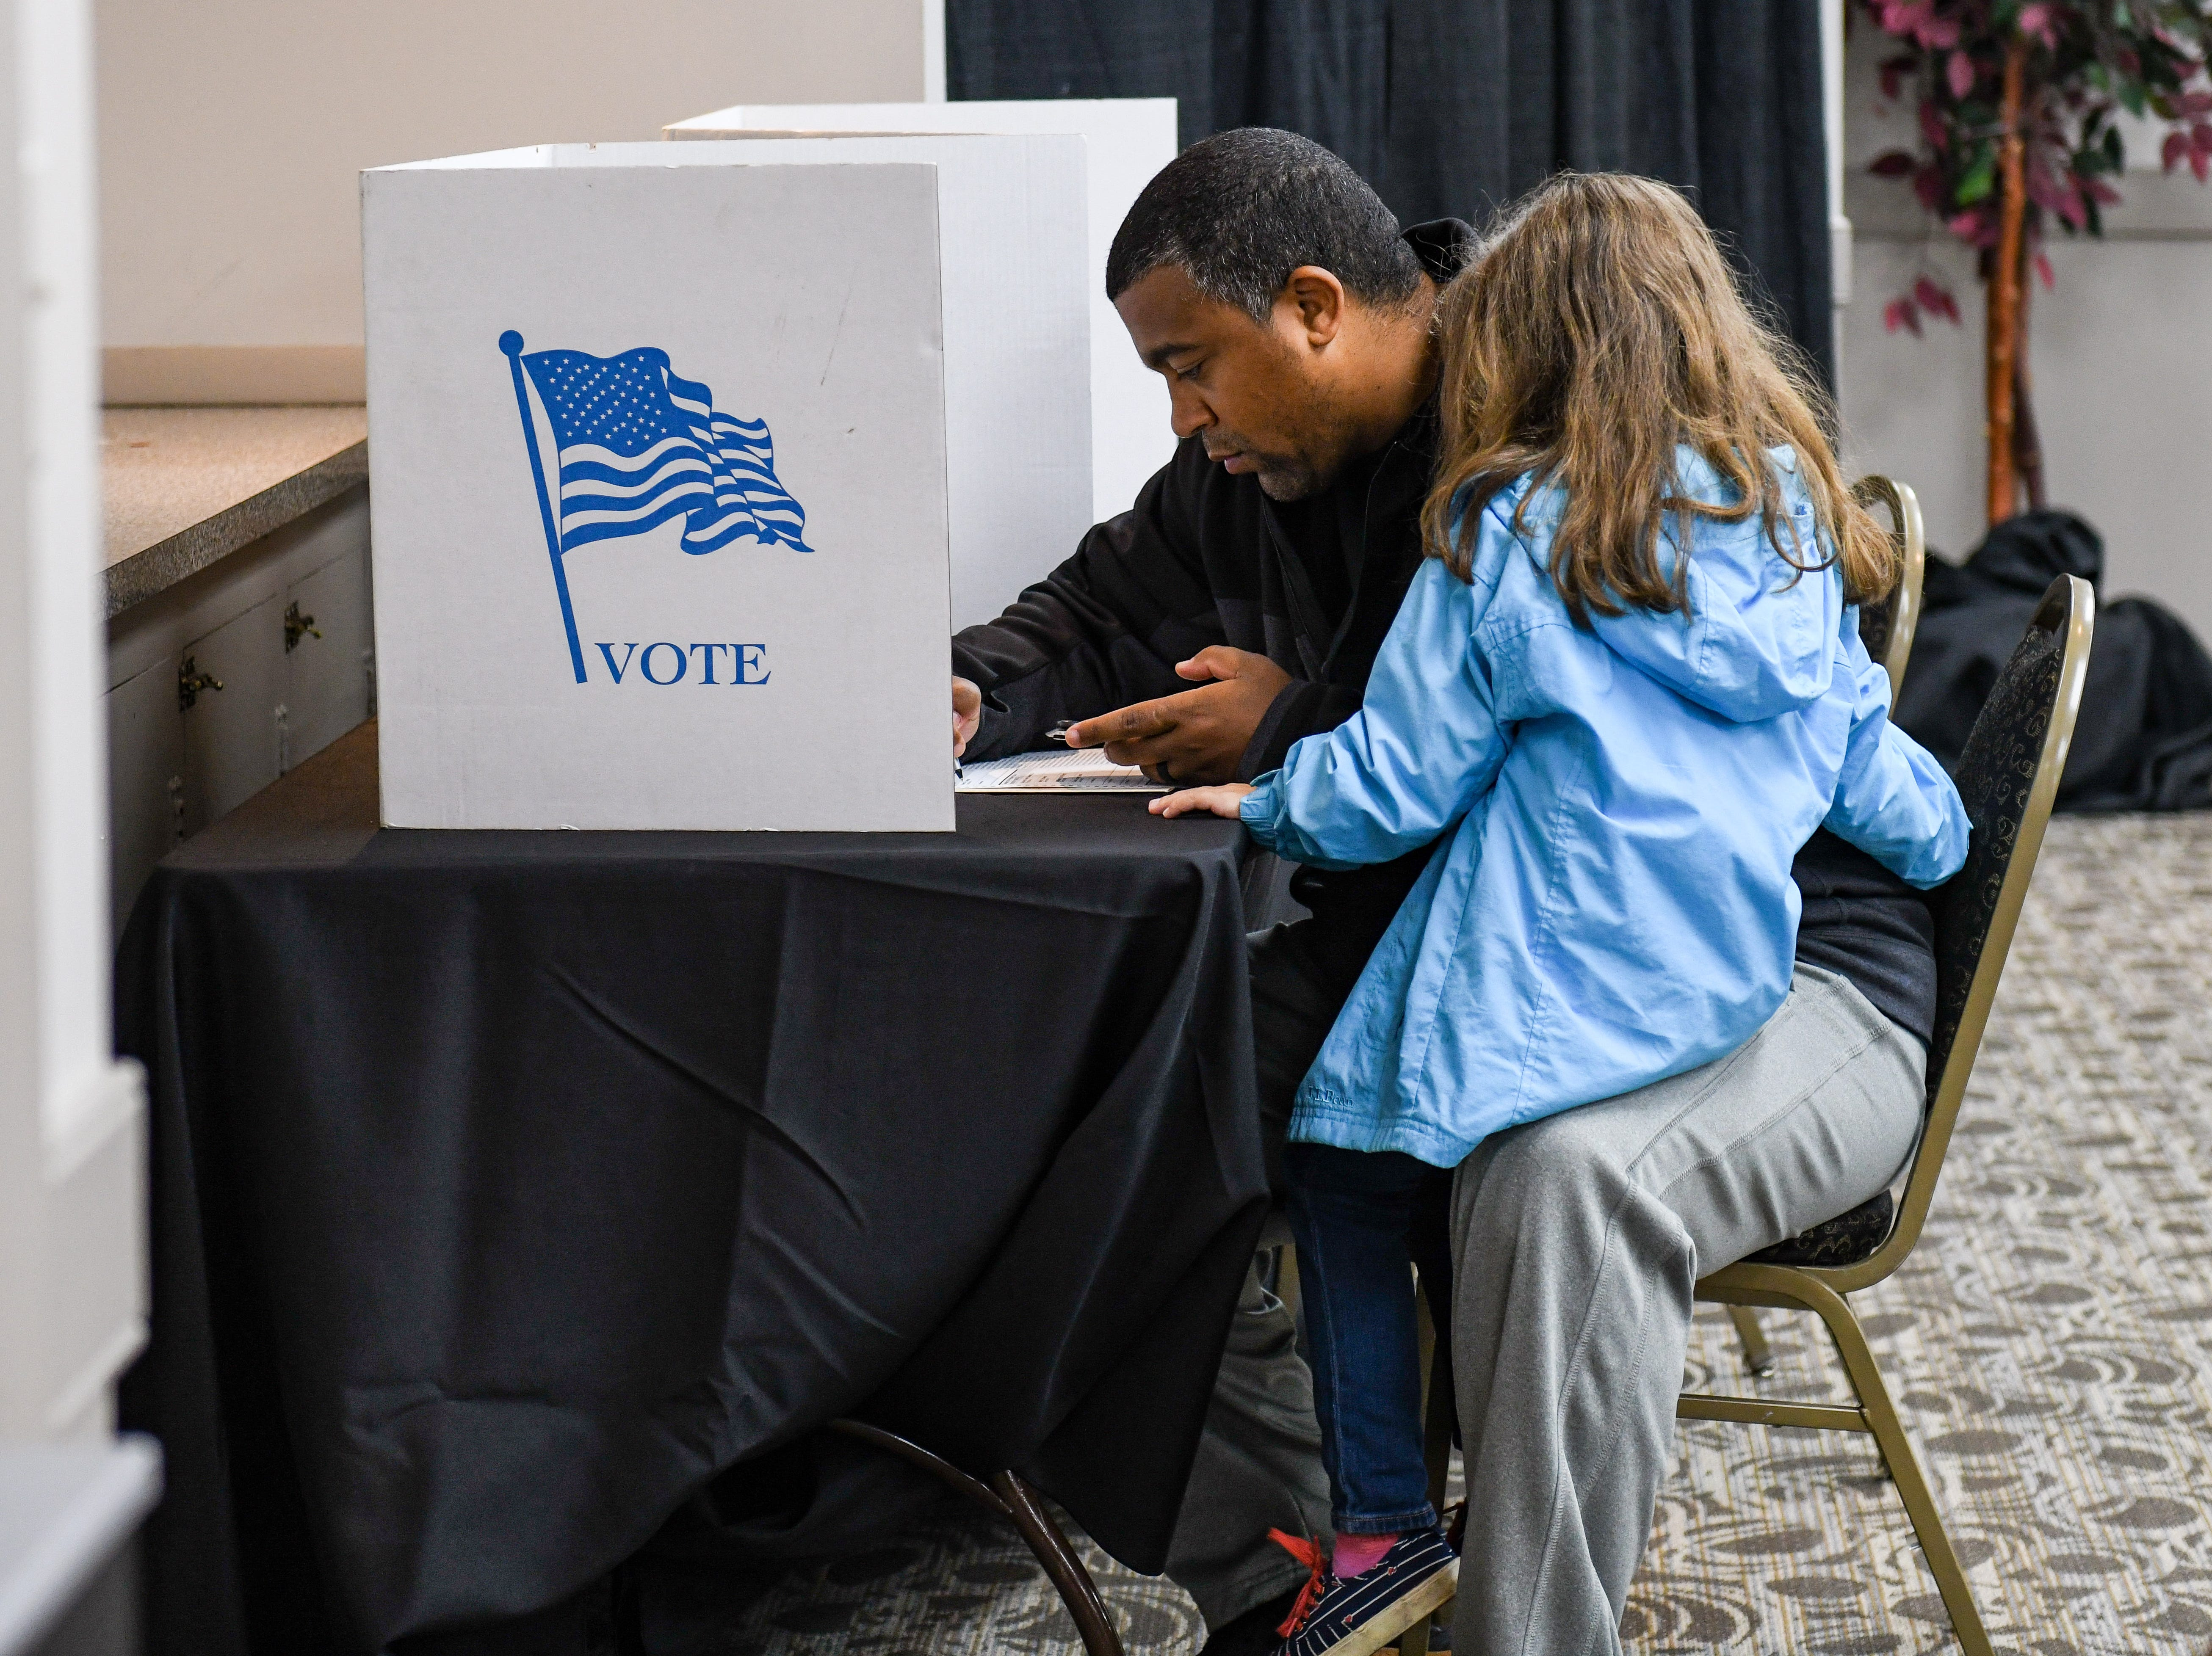 Cameron Ball votes in the midterm election with his daughter on his lap at the Wicomico Civic Center on Tuesday, Nov 6, 2018.